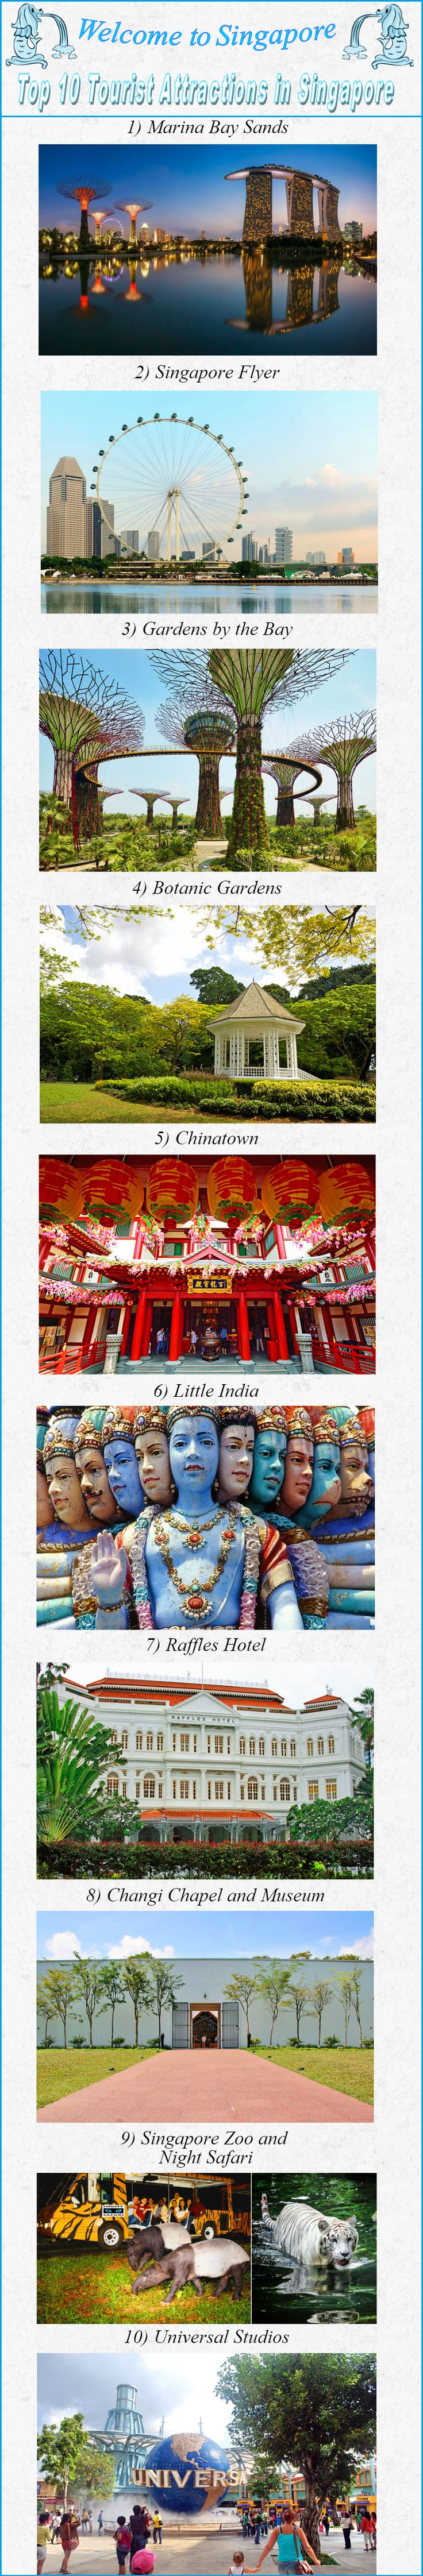 2015-2018 Top 10 Tourist Attractions in Singapore